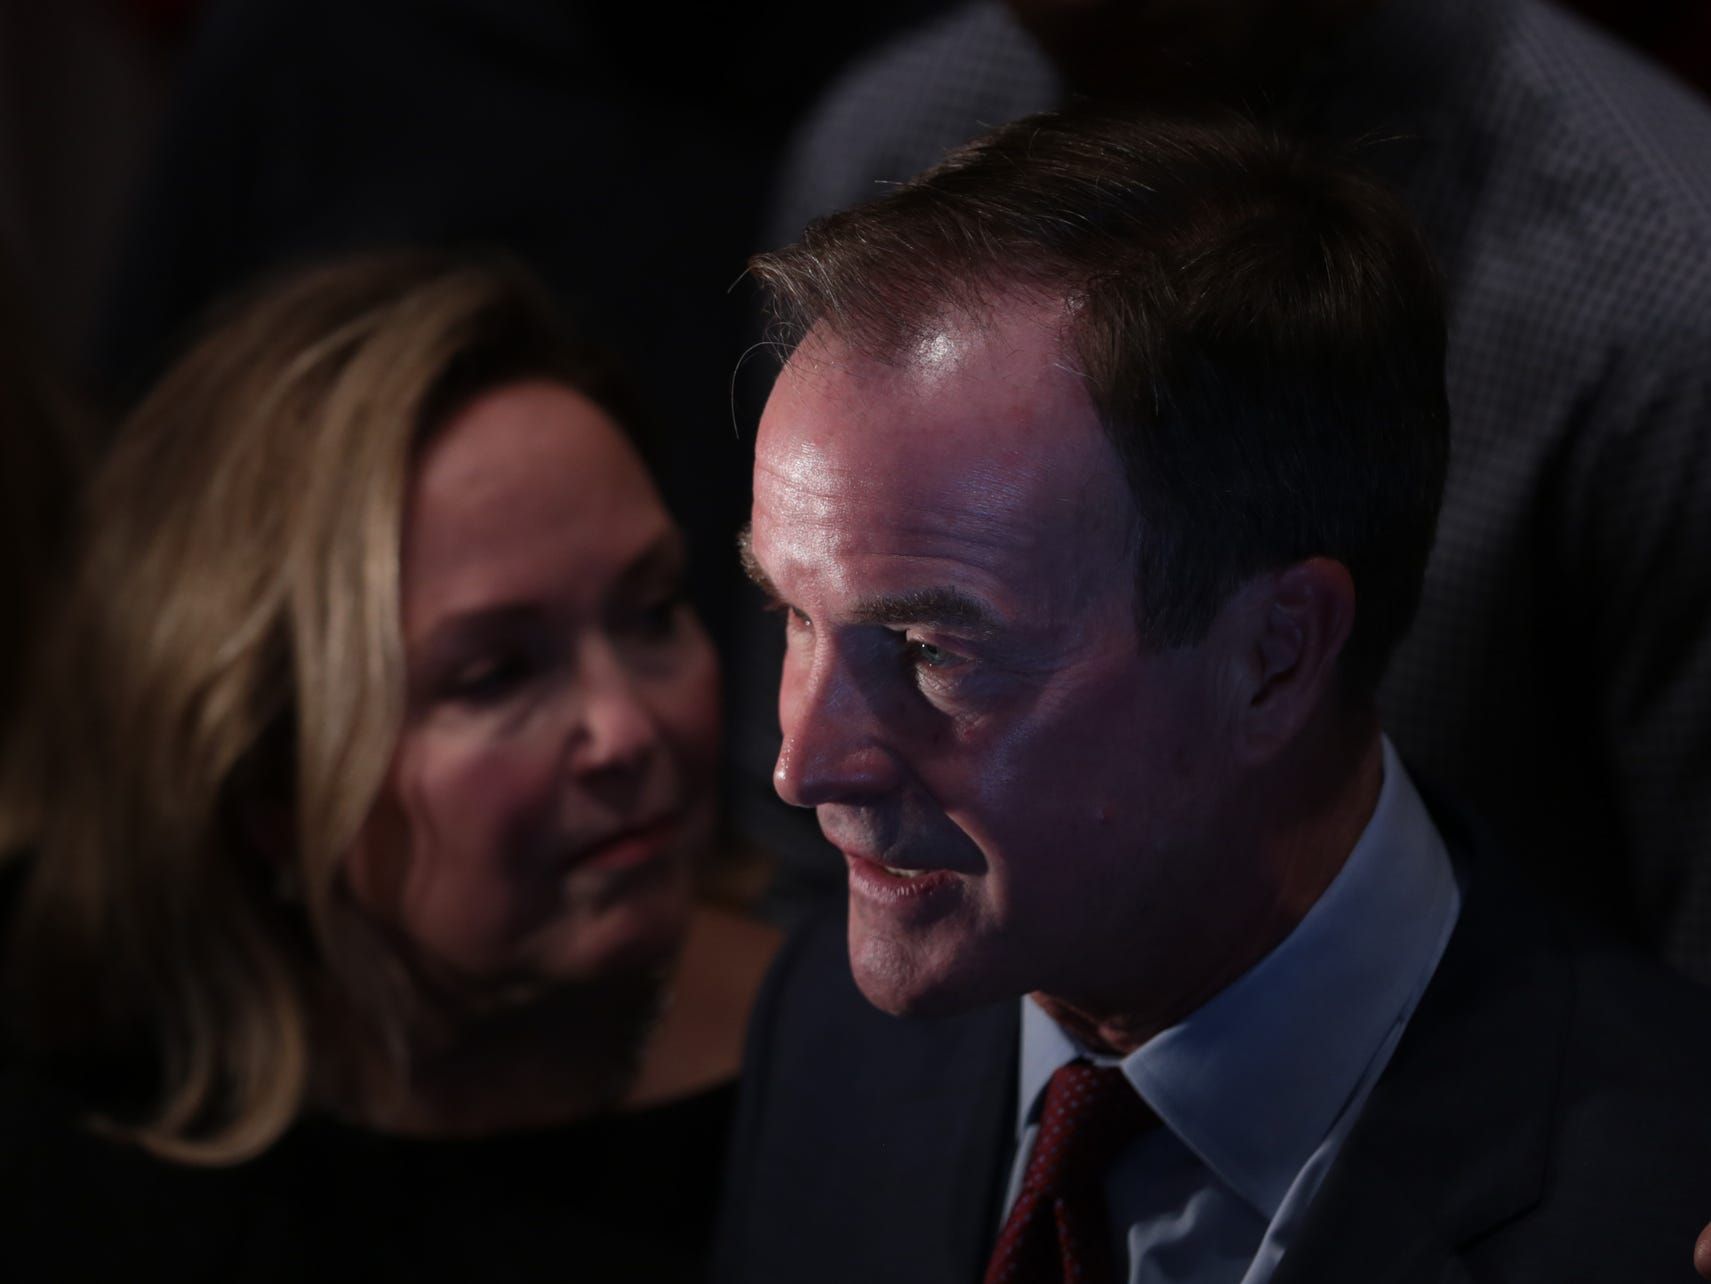 Republican gubernatorial candidate Bill Schuette speaks with press after losing in Michigan's governor race during the Michigan Republican elections night party at the Lansing Center in Lansing on Tuesday, November 6, 2018.